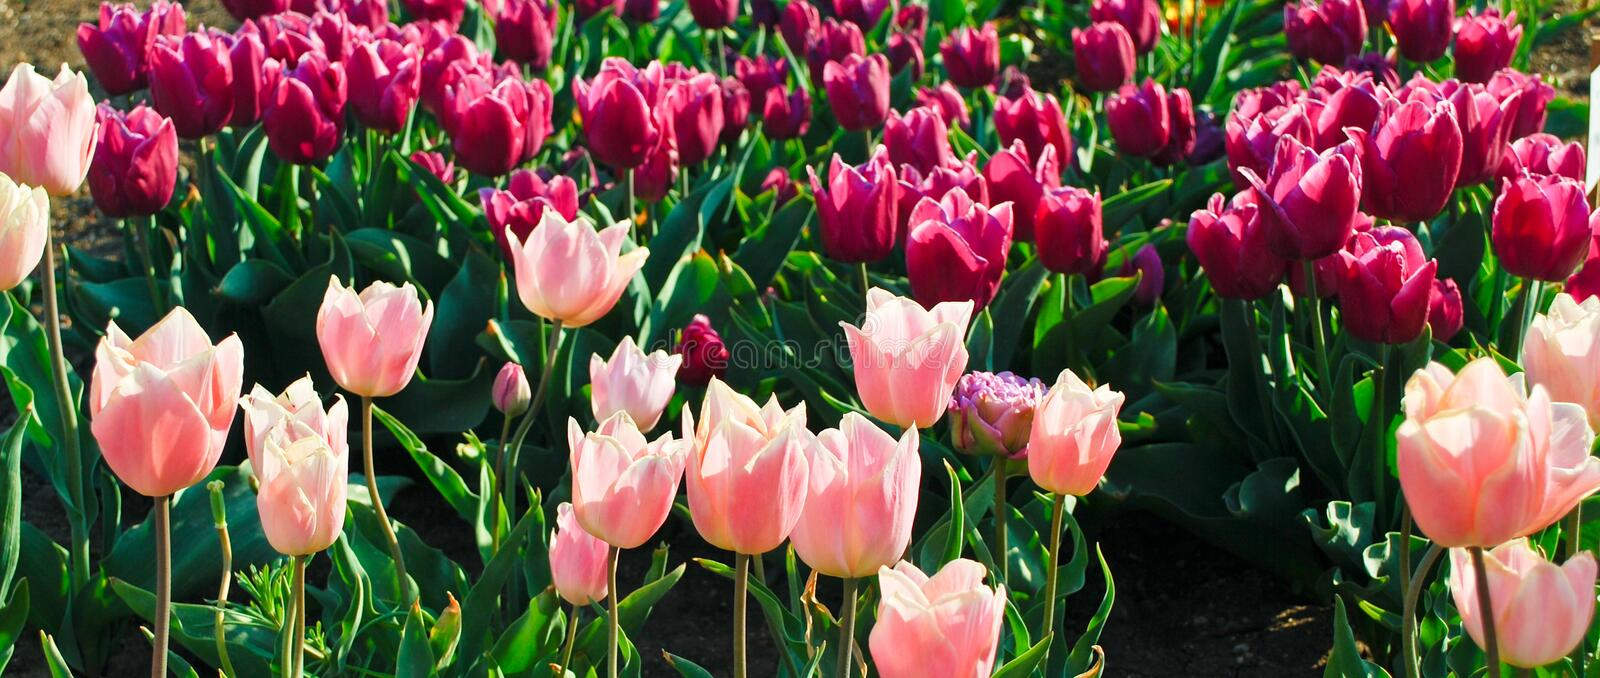 Download Tulips Field stock image. Image of flower, lilac, nature - 14855263